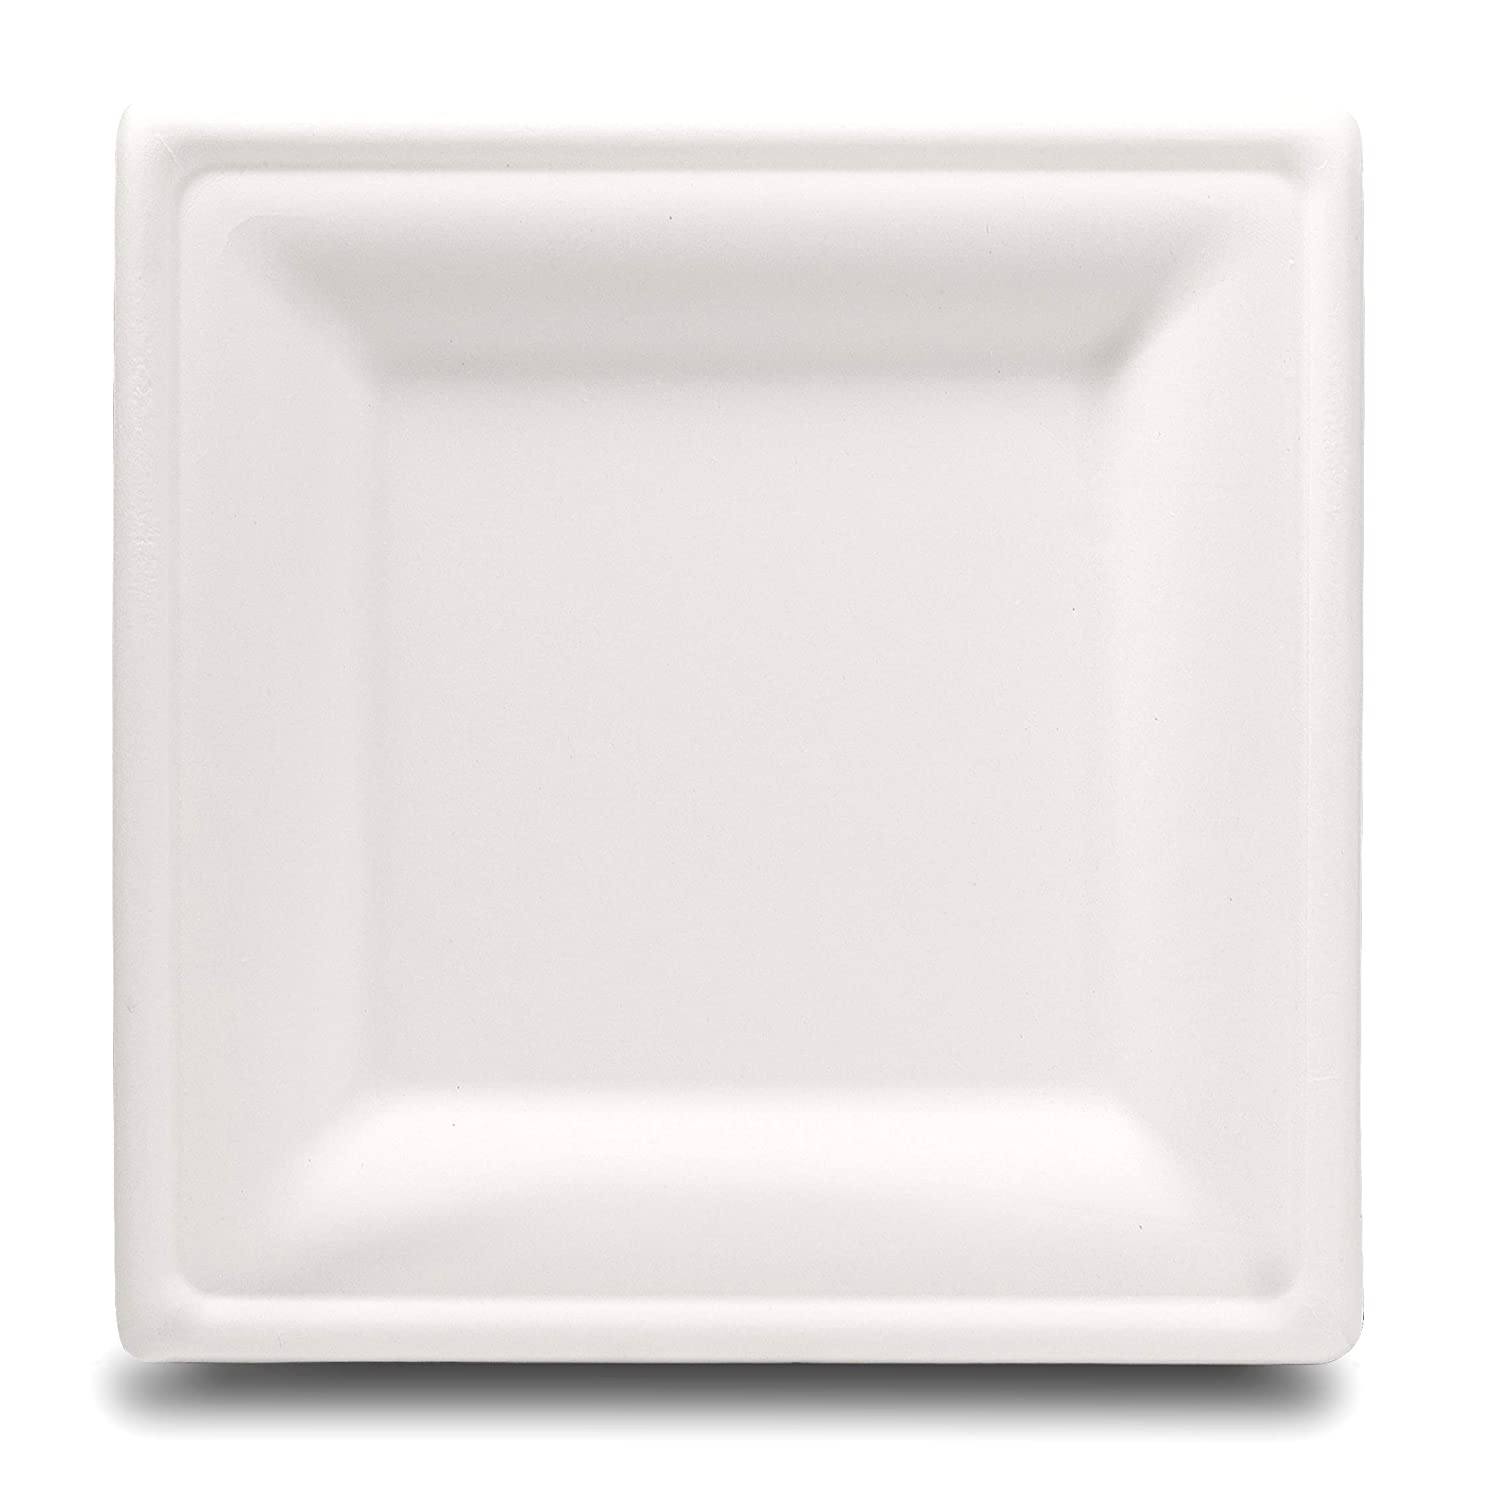 Select Settings [100 COUNT] Compostable Square Dinner Plates (10 Inch) made from bagasse (sugarcane fiber)